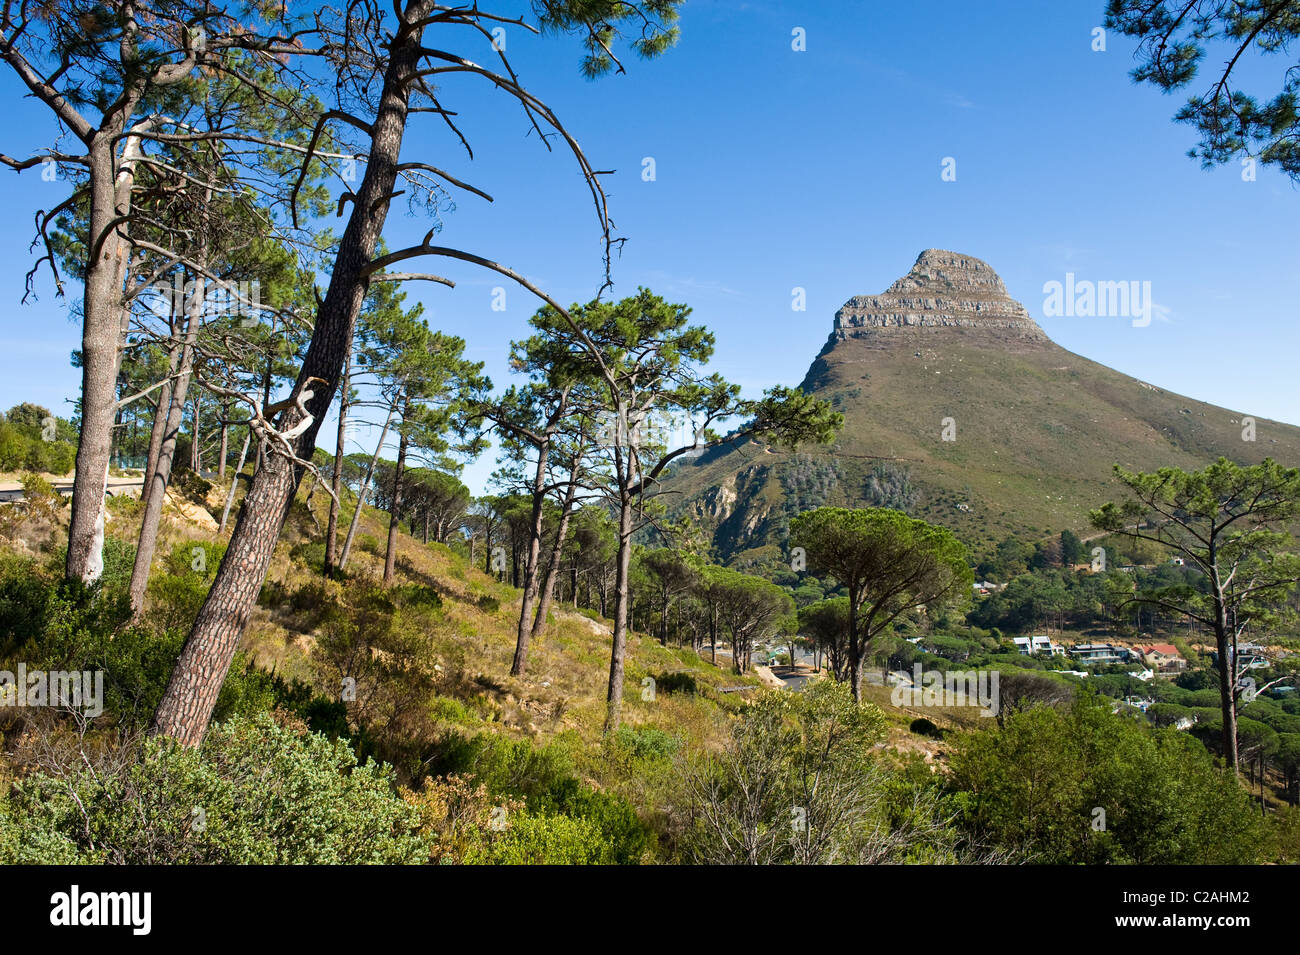 Lion's Head view from Tafelberg, Cape Town, South Africa - Stock Image